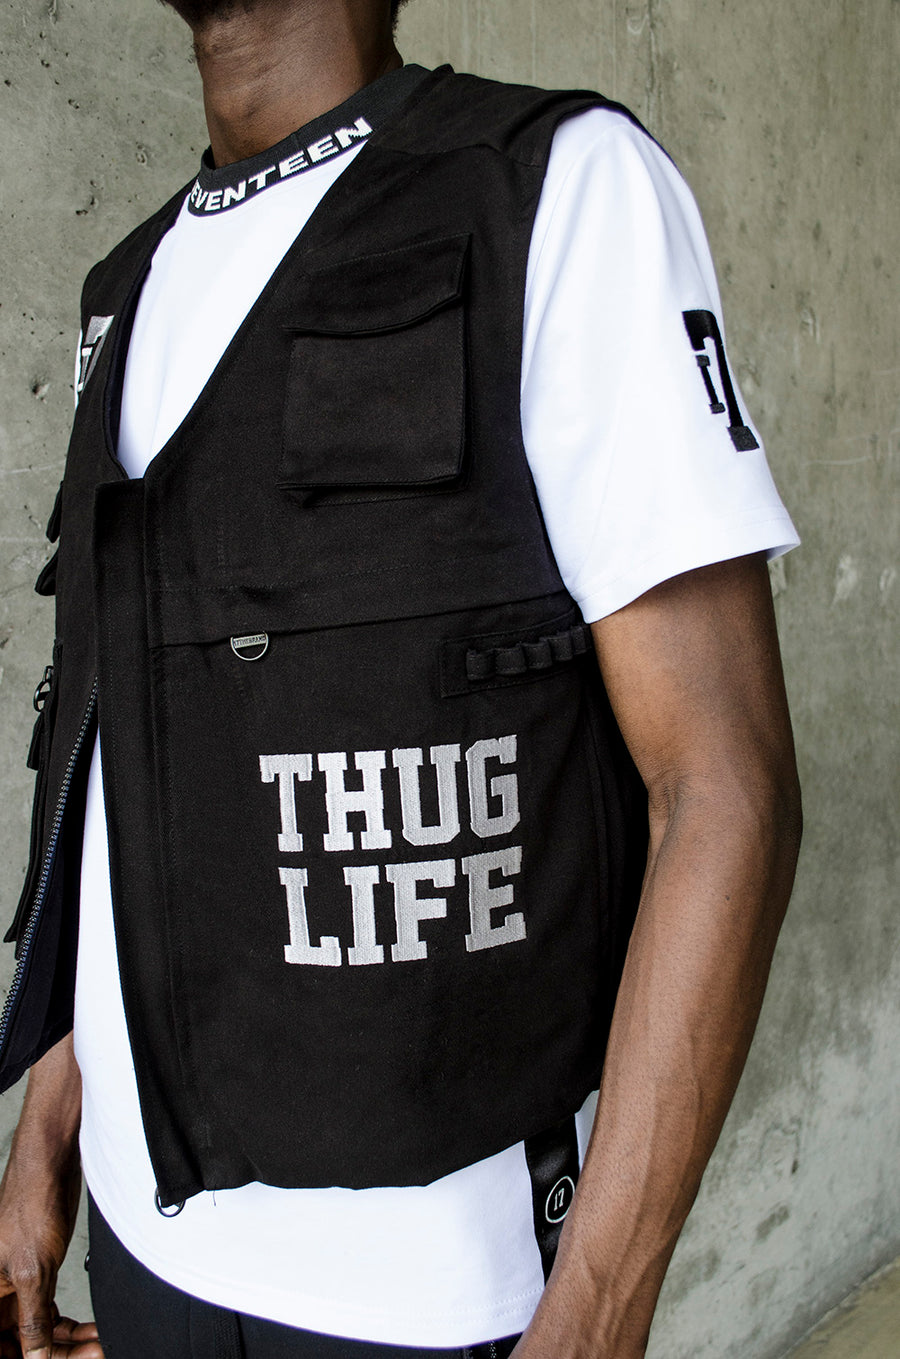 THE RE-UP// Bullet proof Thug Life vest